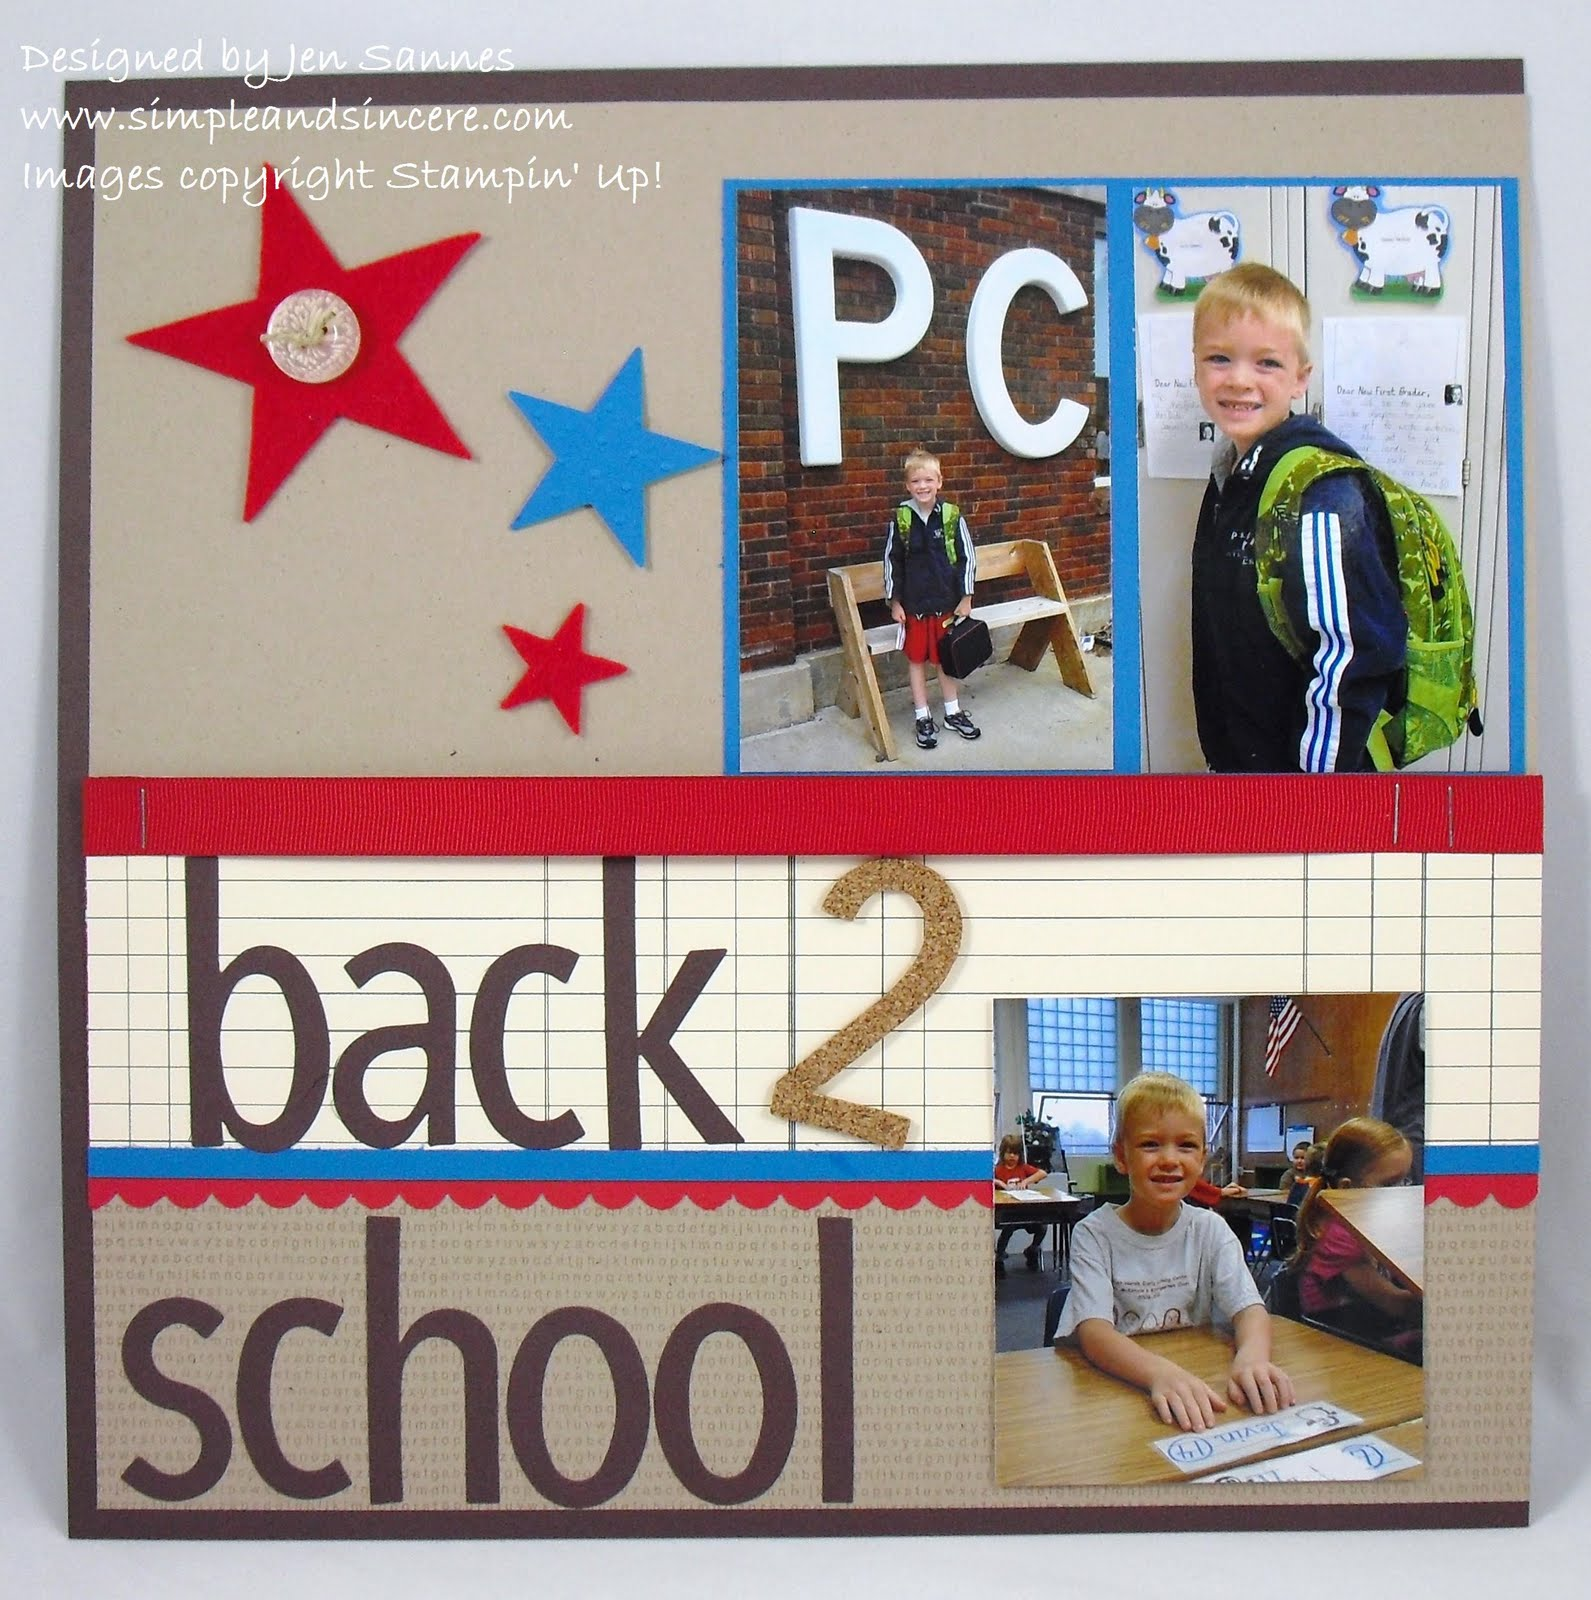 Scrapbook ideas school - I M Kicking Off My First Scrapbooking Class On Sunday And I M Really Excited This Is The 2 Page Layout That We Will Be Making With A Back To School